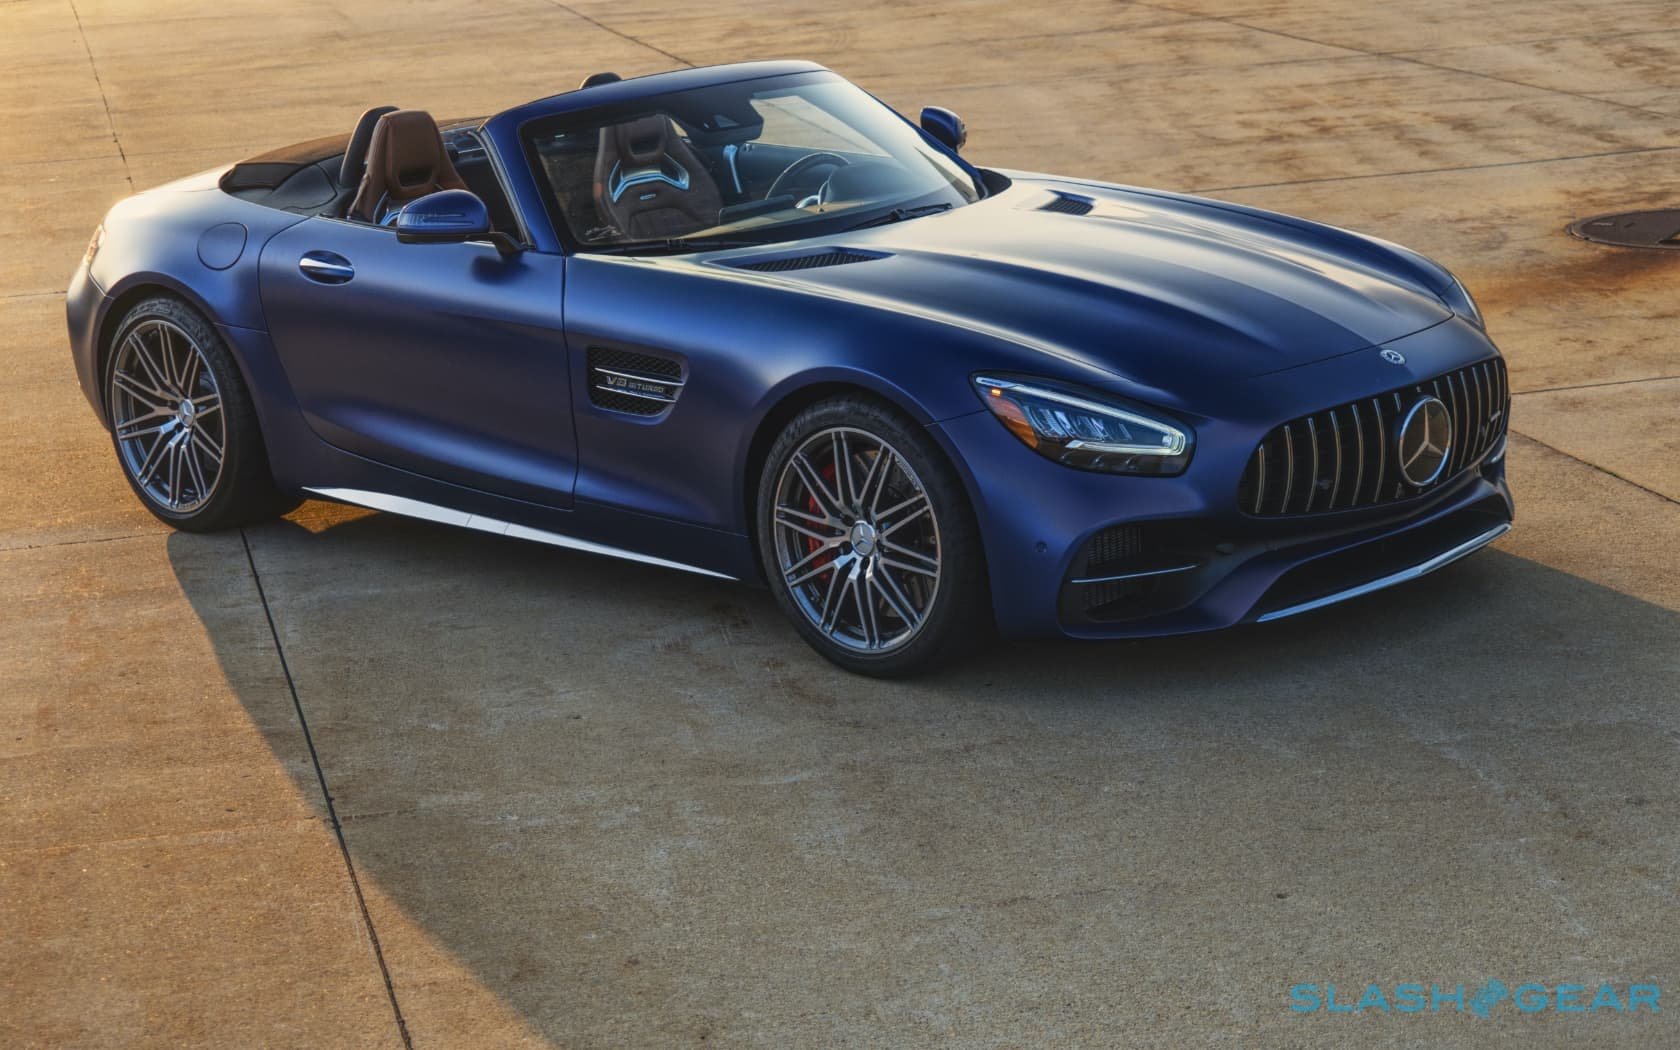 2020 Mercedes Amg Gt C Roadster Review Power With Personality Slashgear